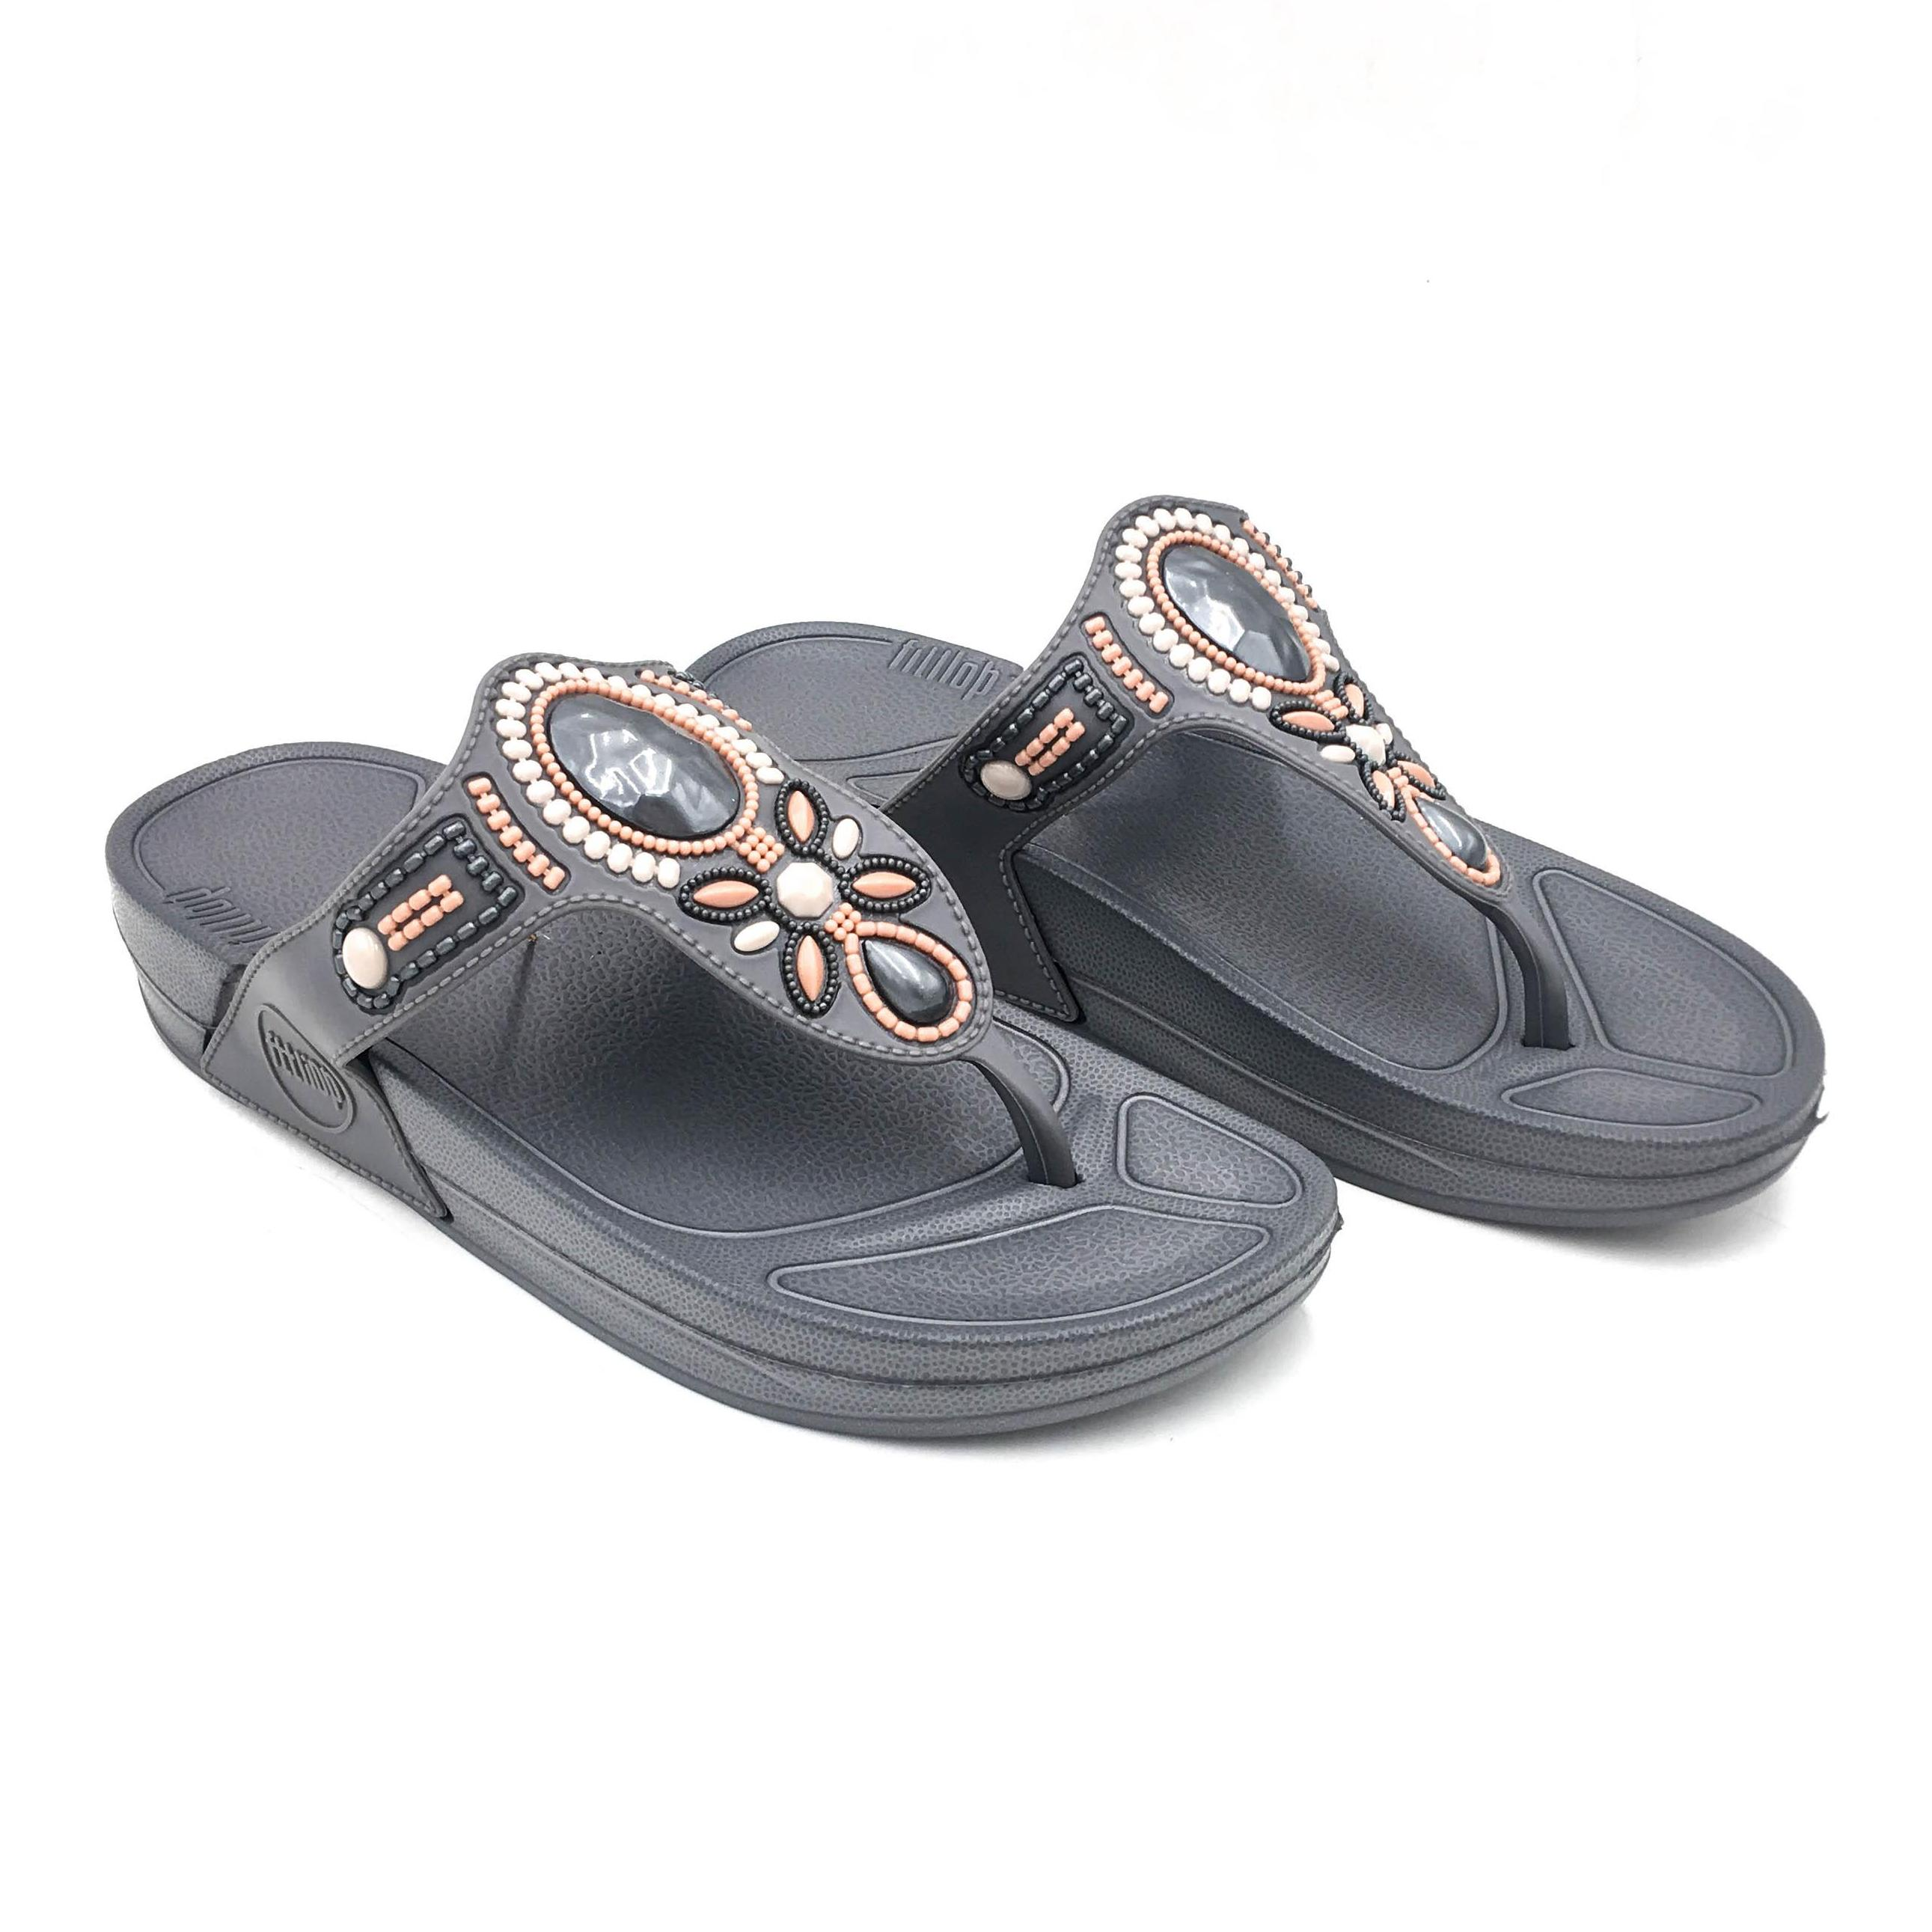 ladies jelly style flip flops with flower and diamate trim size 4 NEW